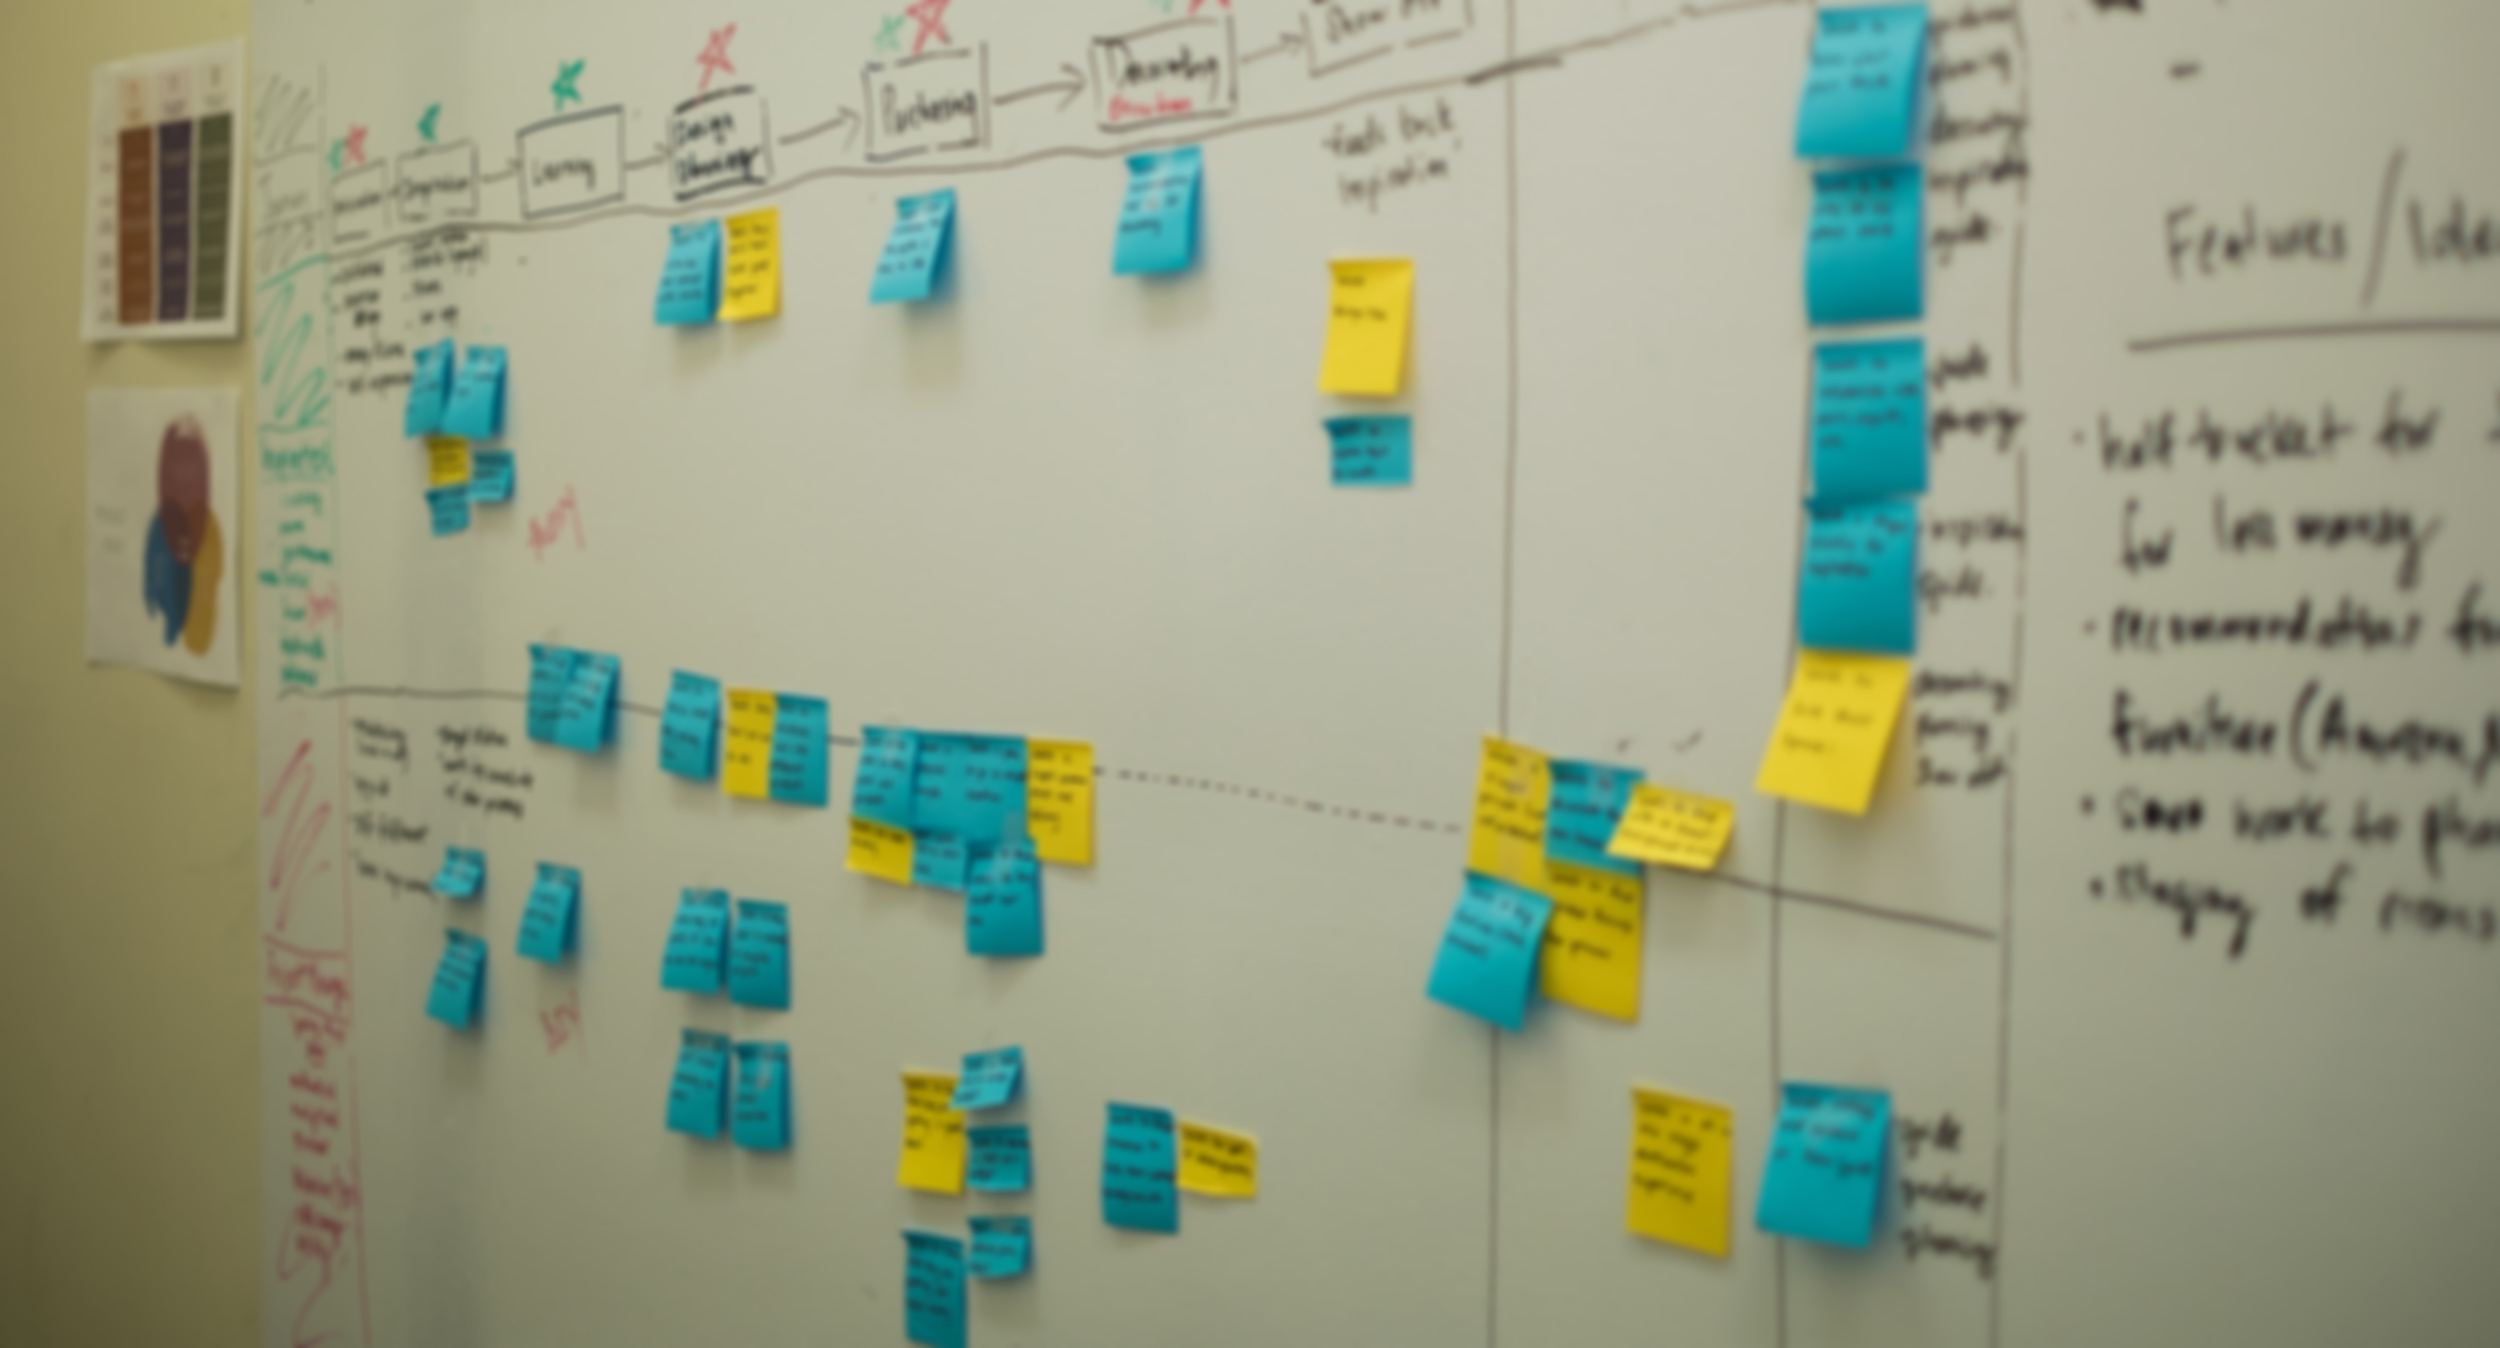 Our user goals aligned to the various touch points in the user journey